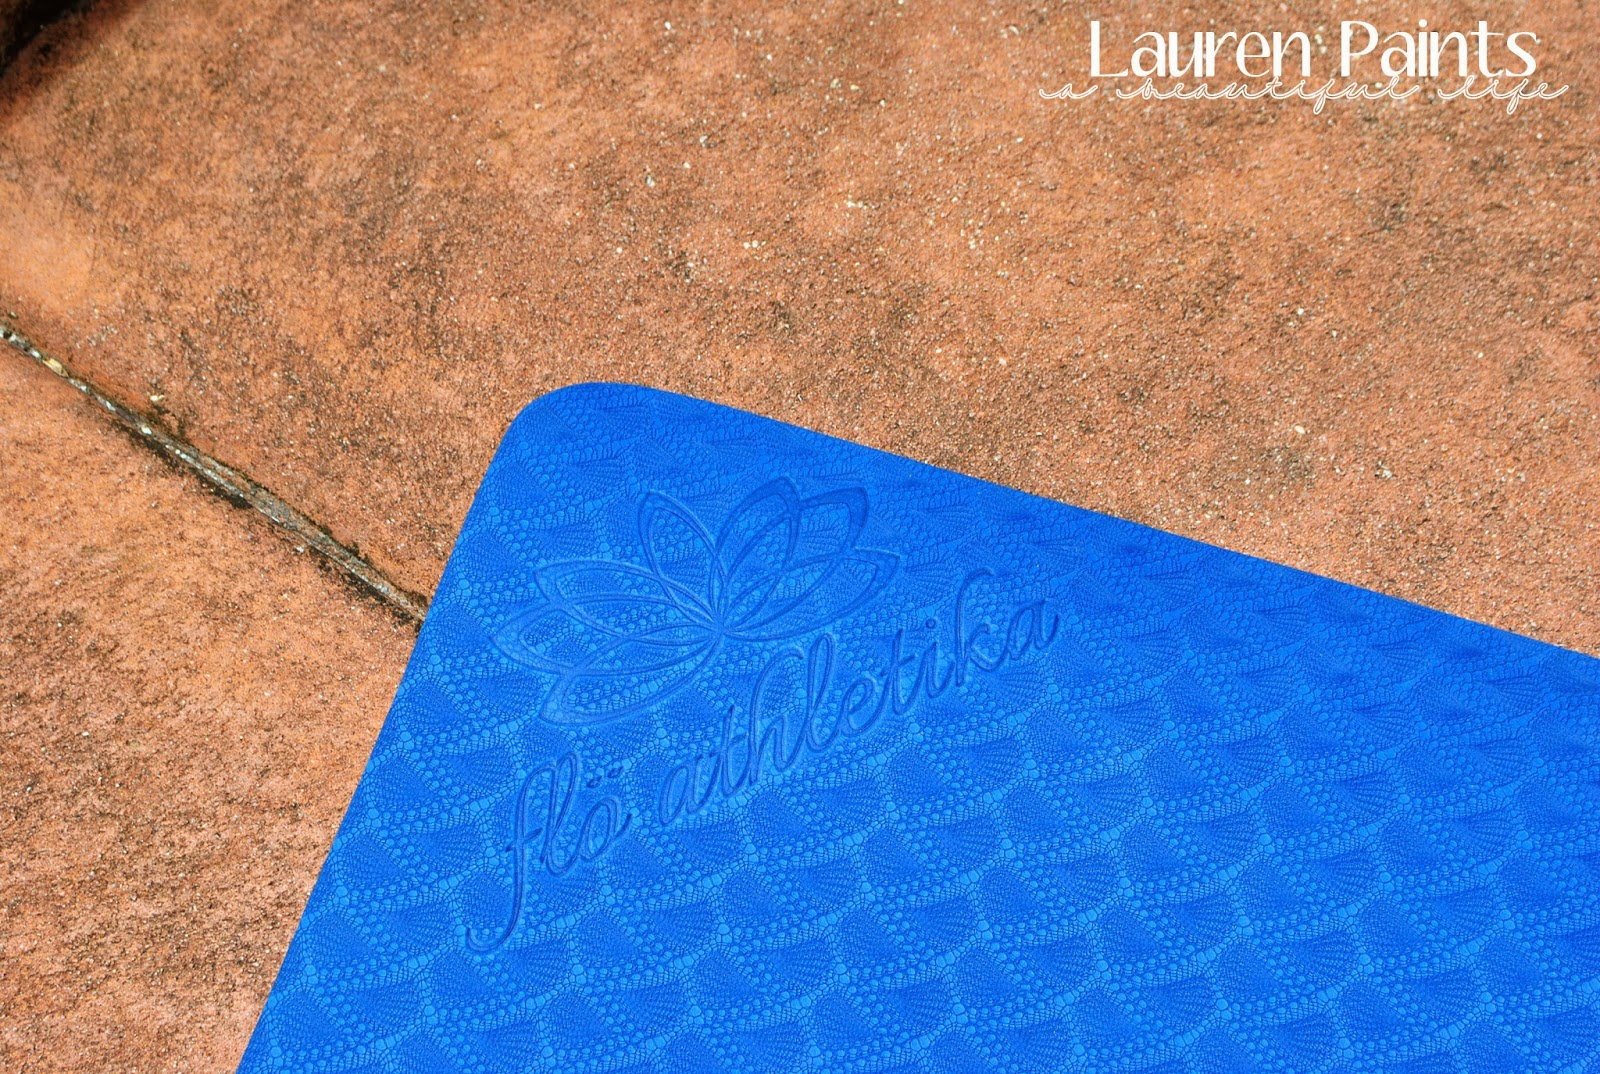 FloAthletika Yoga Mat for #EverybodyYOGAchallenge hosted by Lauren Paints